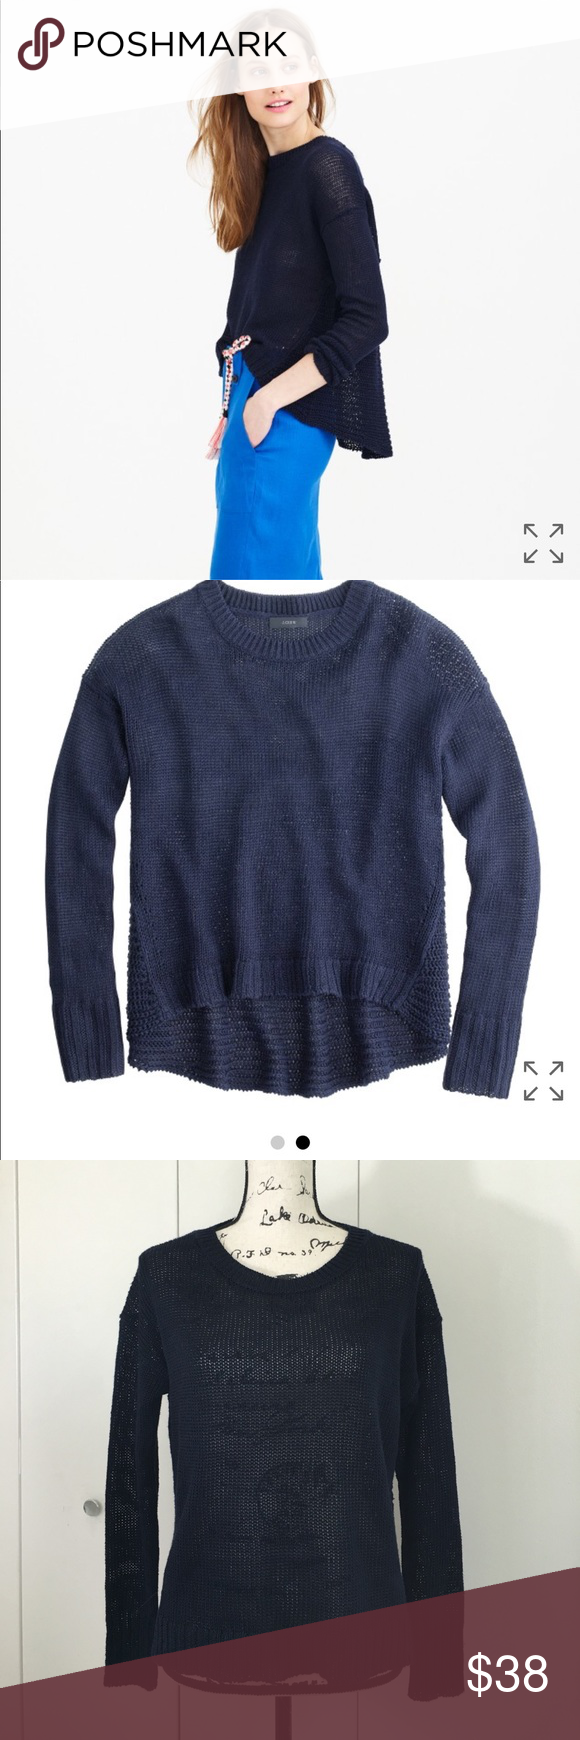 J.Crew textured beach sweater navy blue oversized | Beach sweater ...